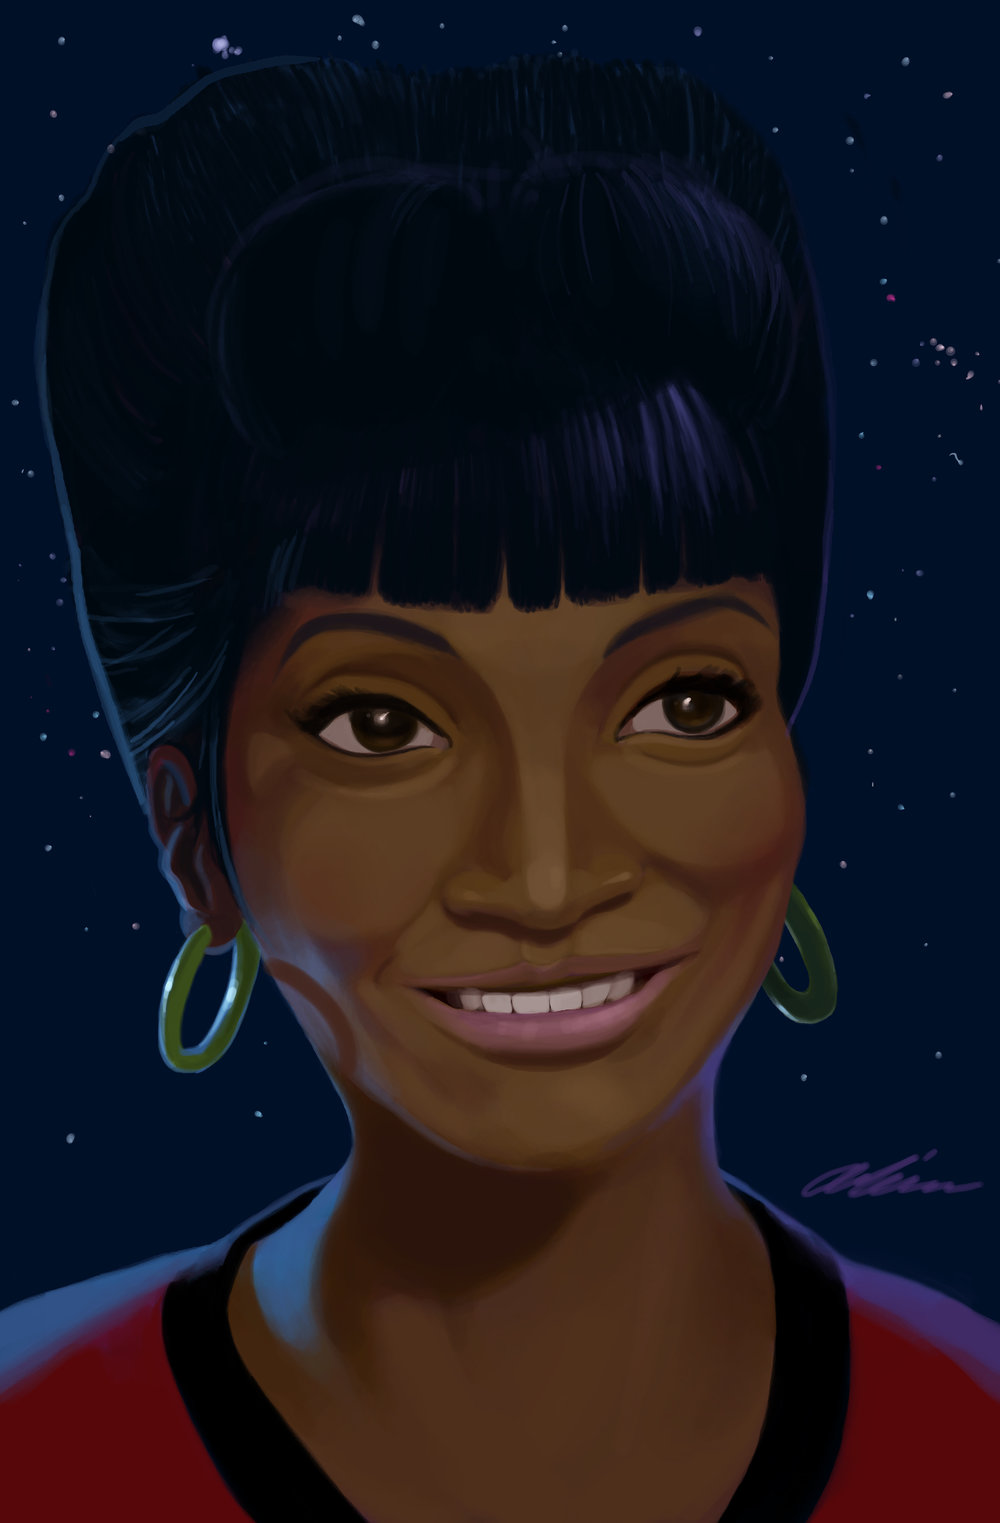 Click to purchase a print of this painting for $10.00 in our Store:  https://www.inazumastudios.com/shop/uhura-print   Star Trek © Paramount Pictures